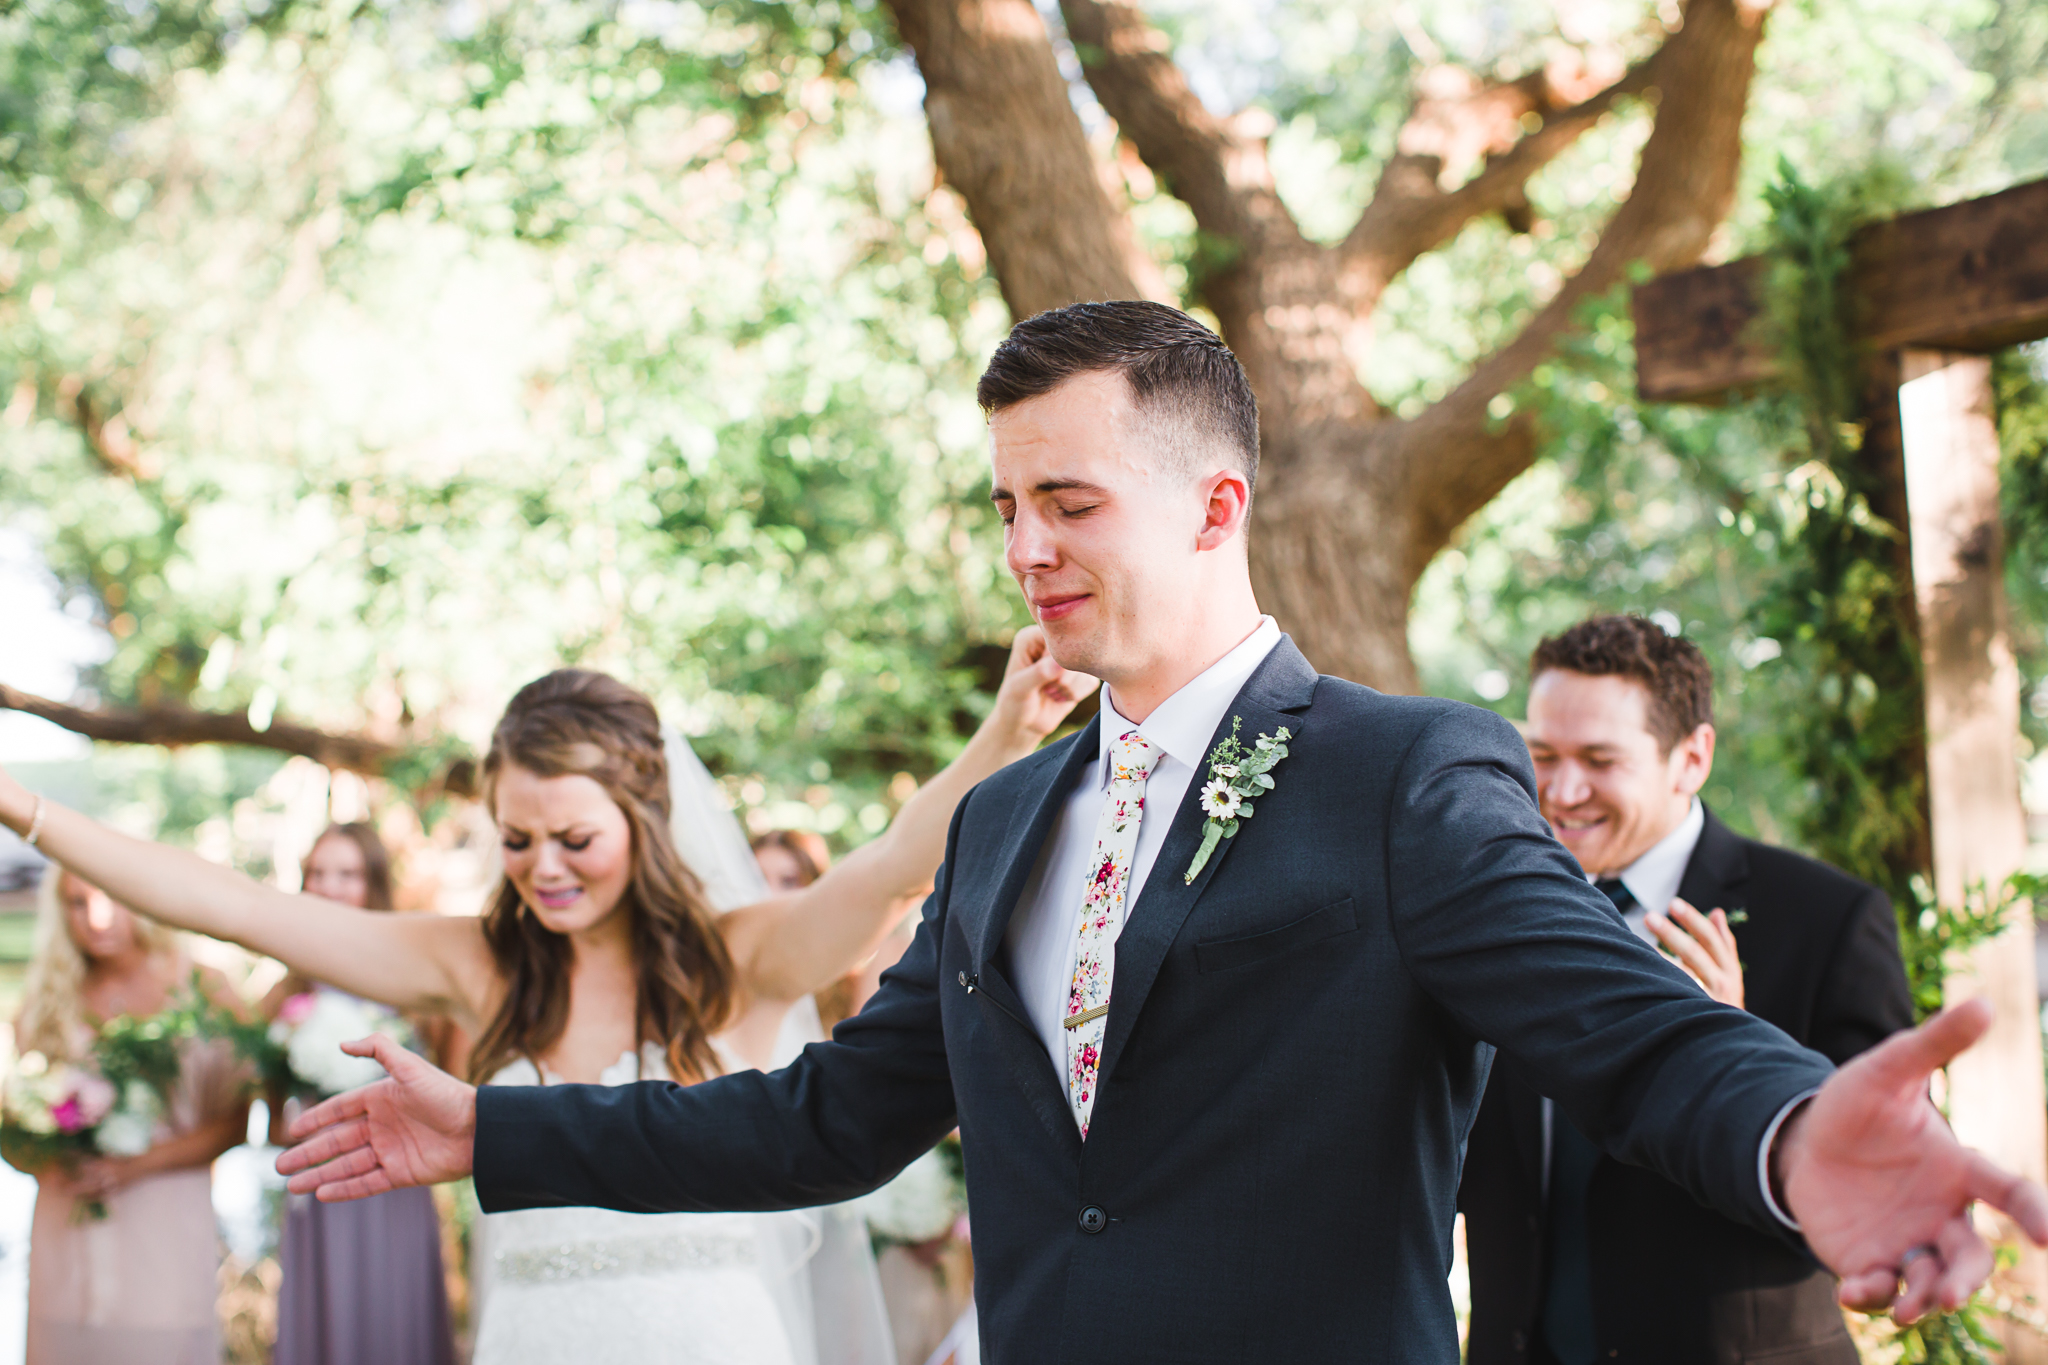 Channing and Josiah were not afraid to show all of the emotions they were feeling on their wedding day. This moment of worship and abandon was unforgettable.